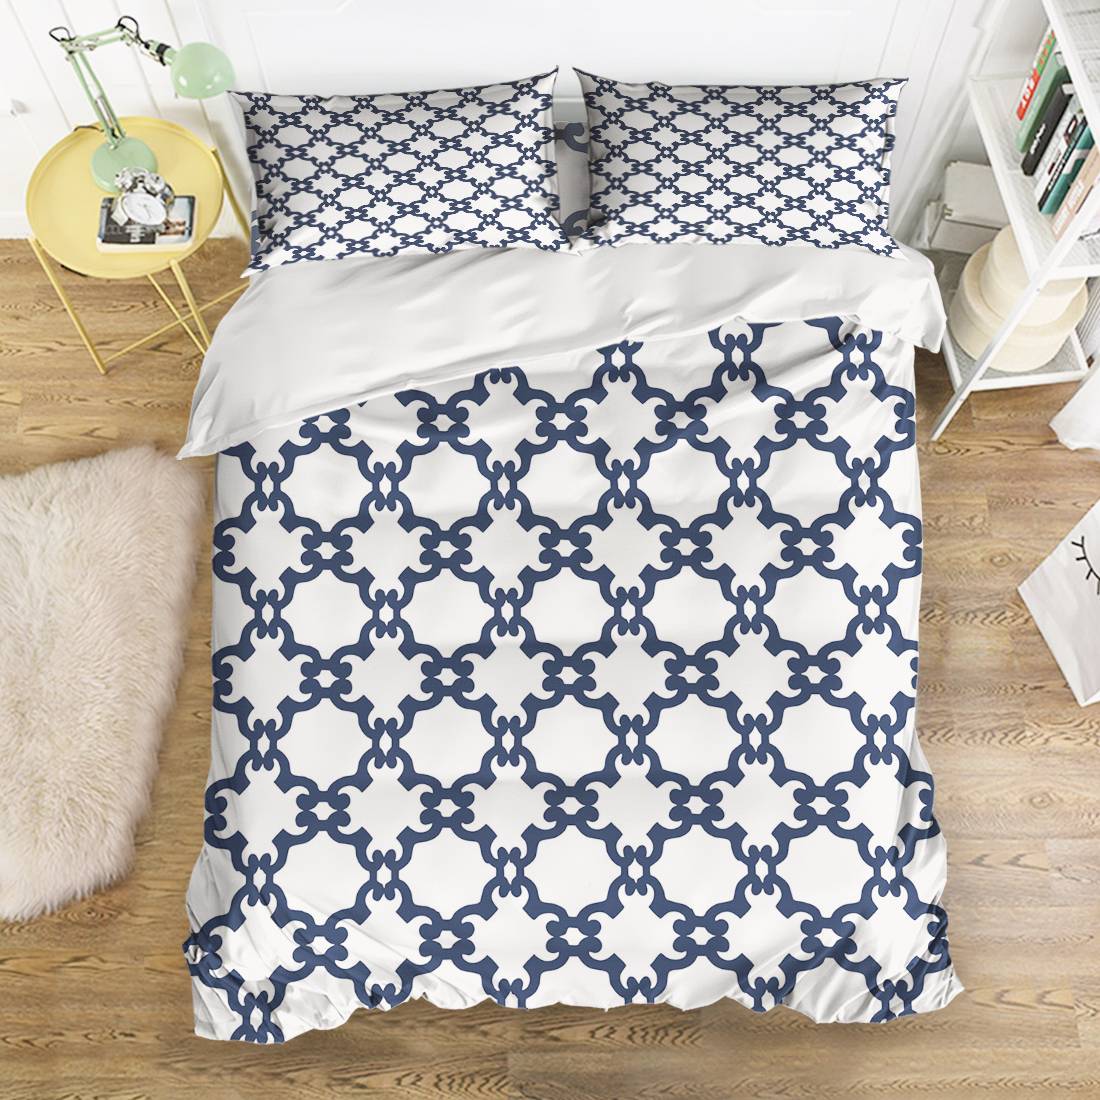 Us 116 86 30 Off Charmhome Geometric Pattern Bedding Sets 4pcs Navy Blue White Duvet Cover Bed Sheet Pillowcases For Kids Free Shipping In